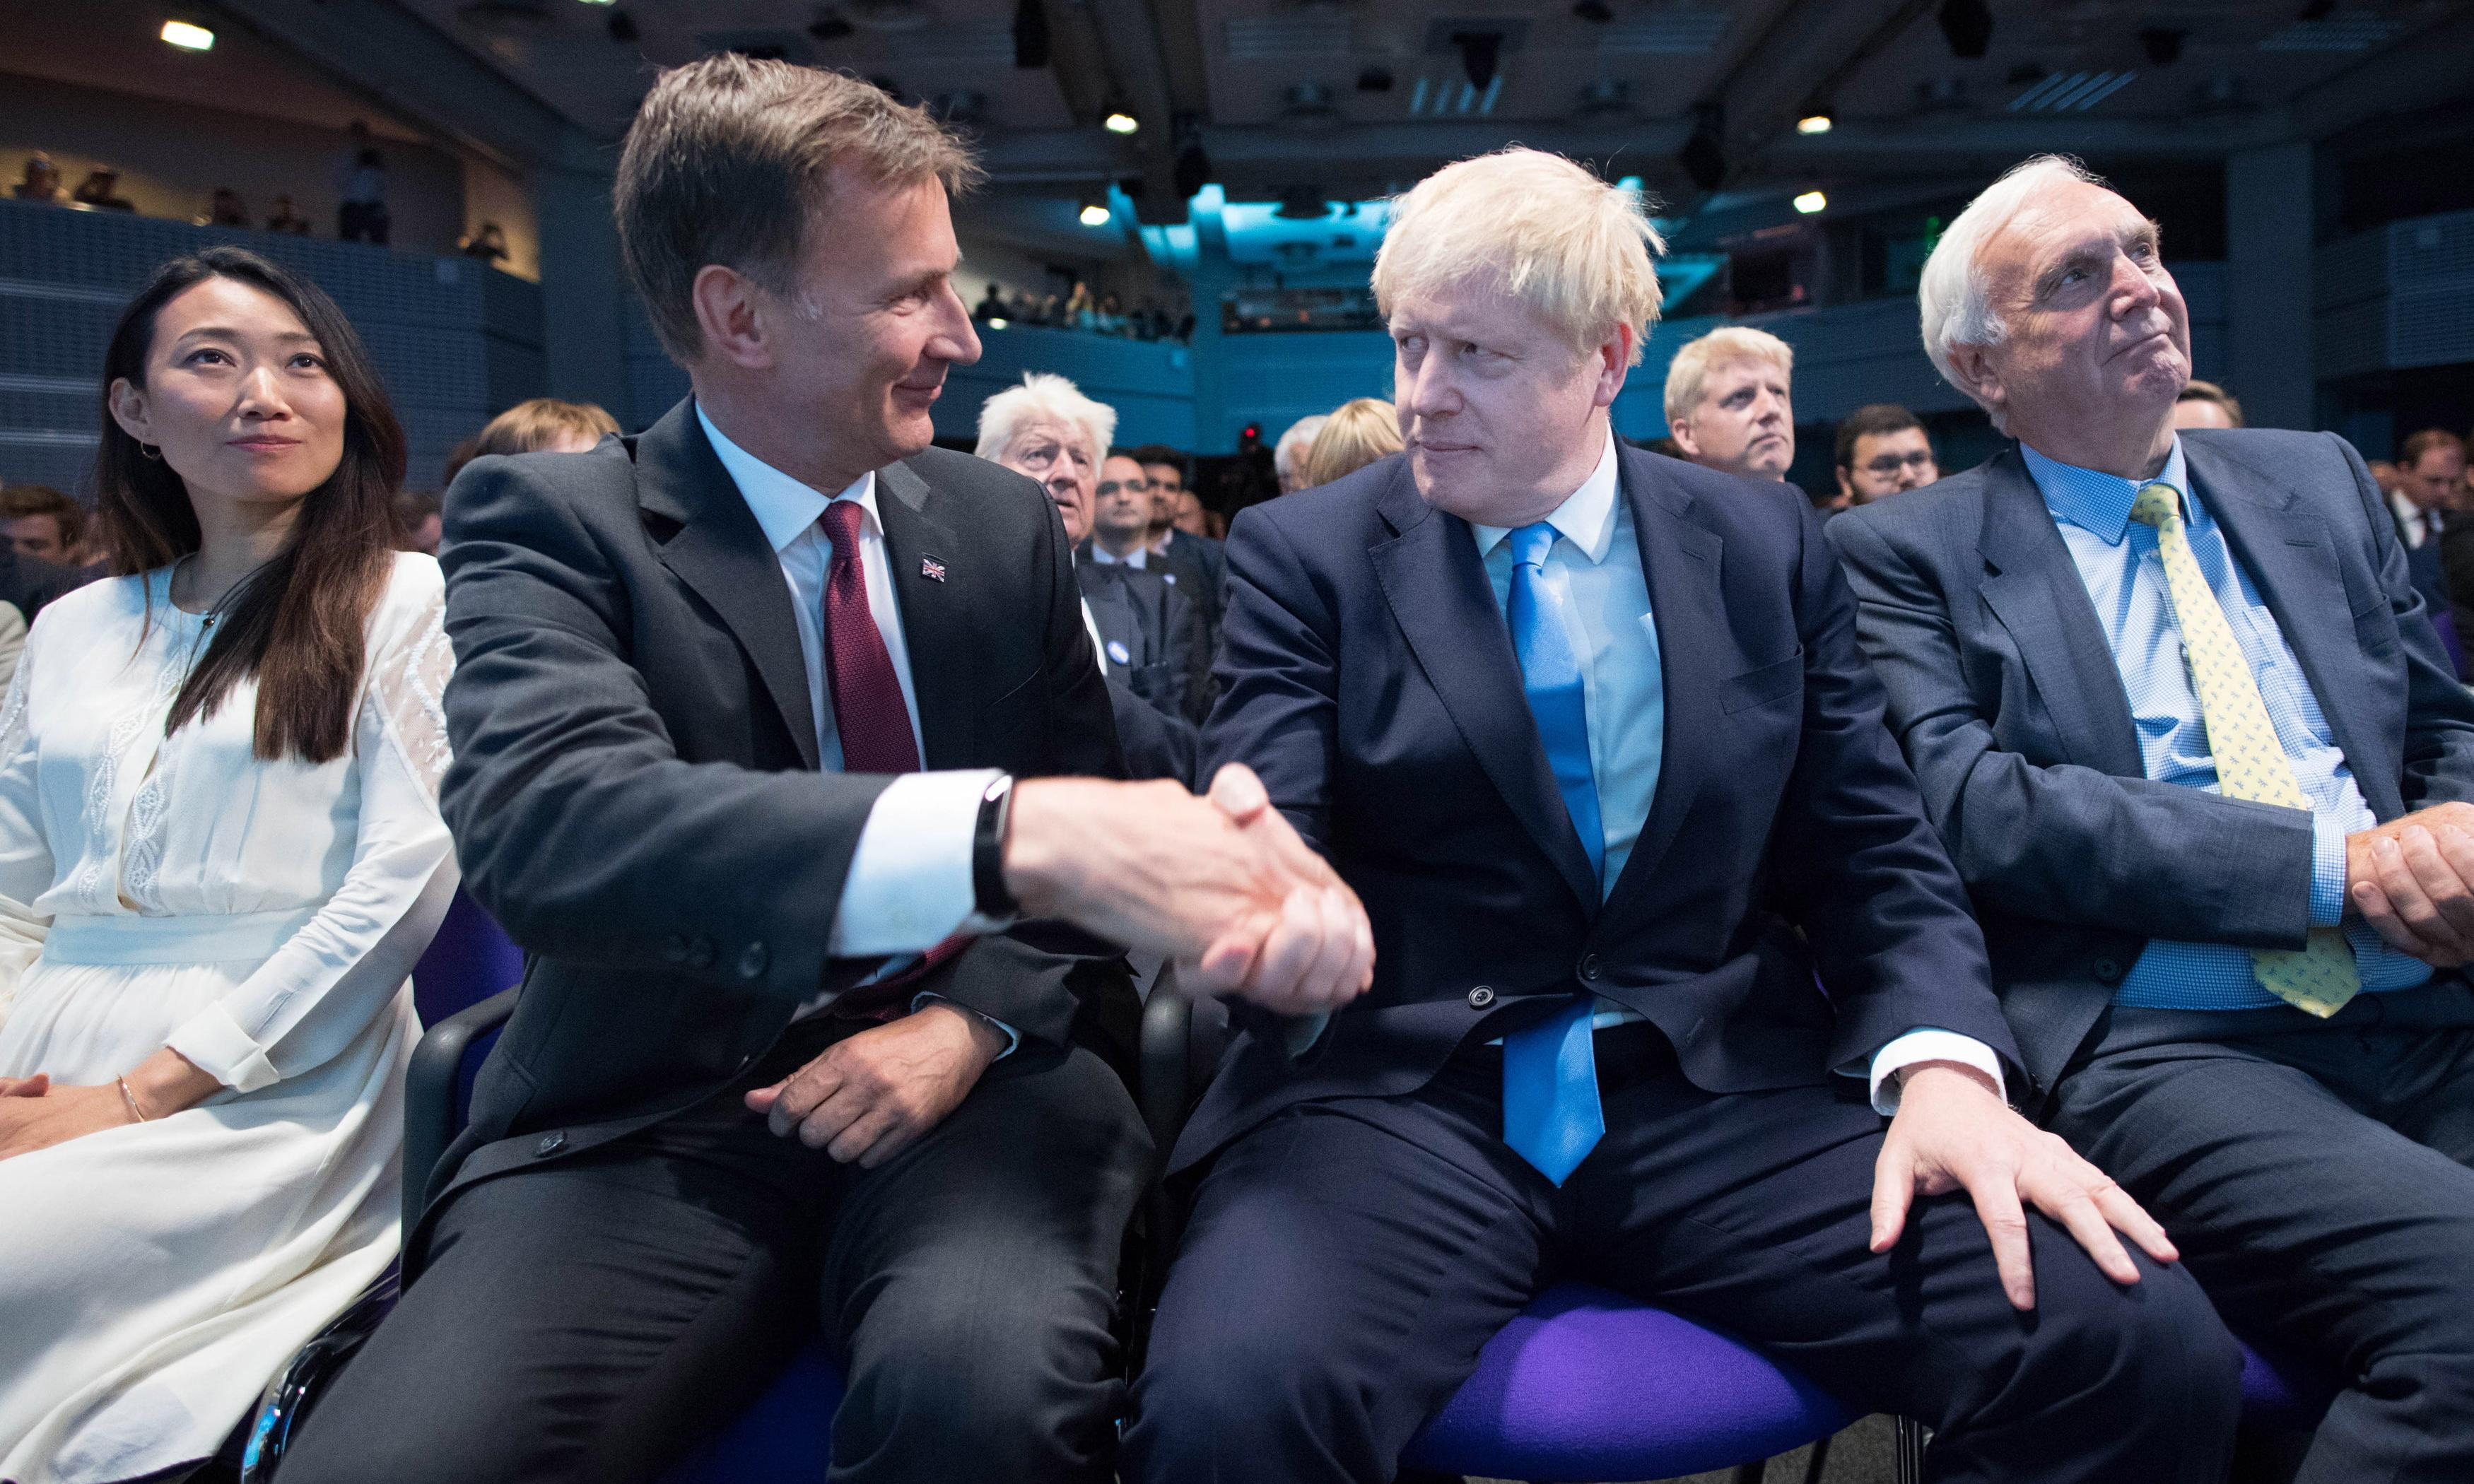 Ambition fulfilled for Boris Johnson. But what next for Britain?